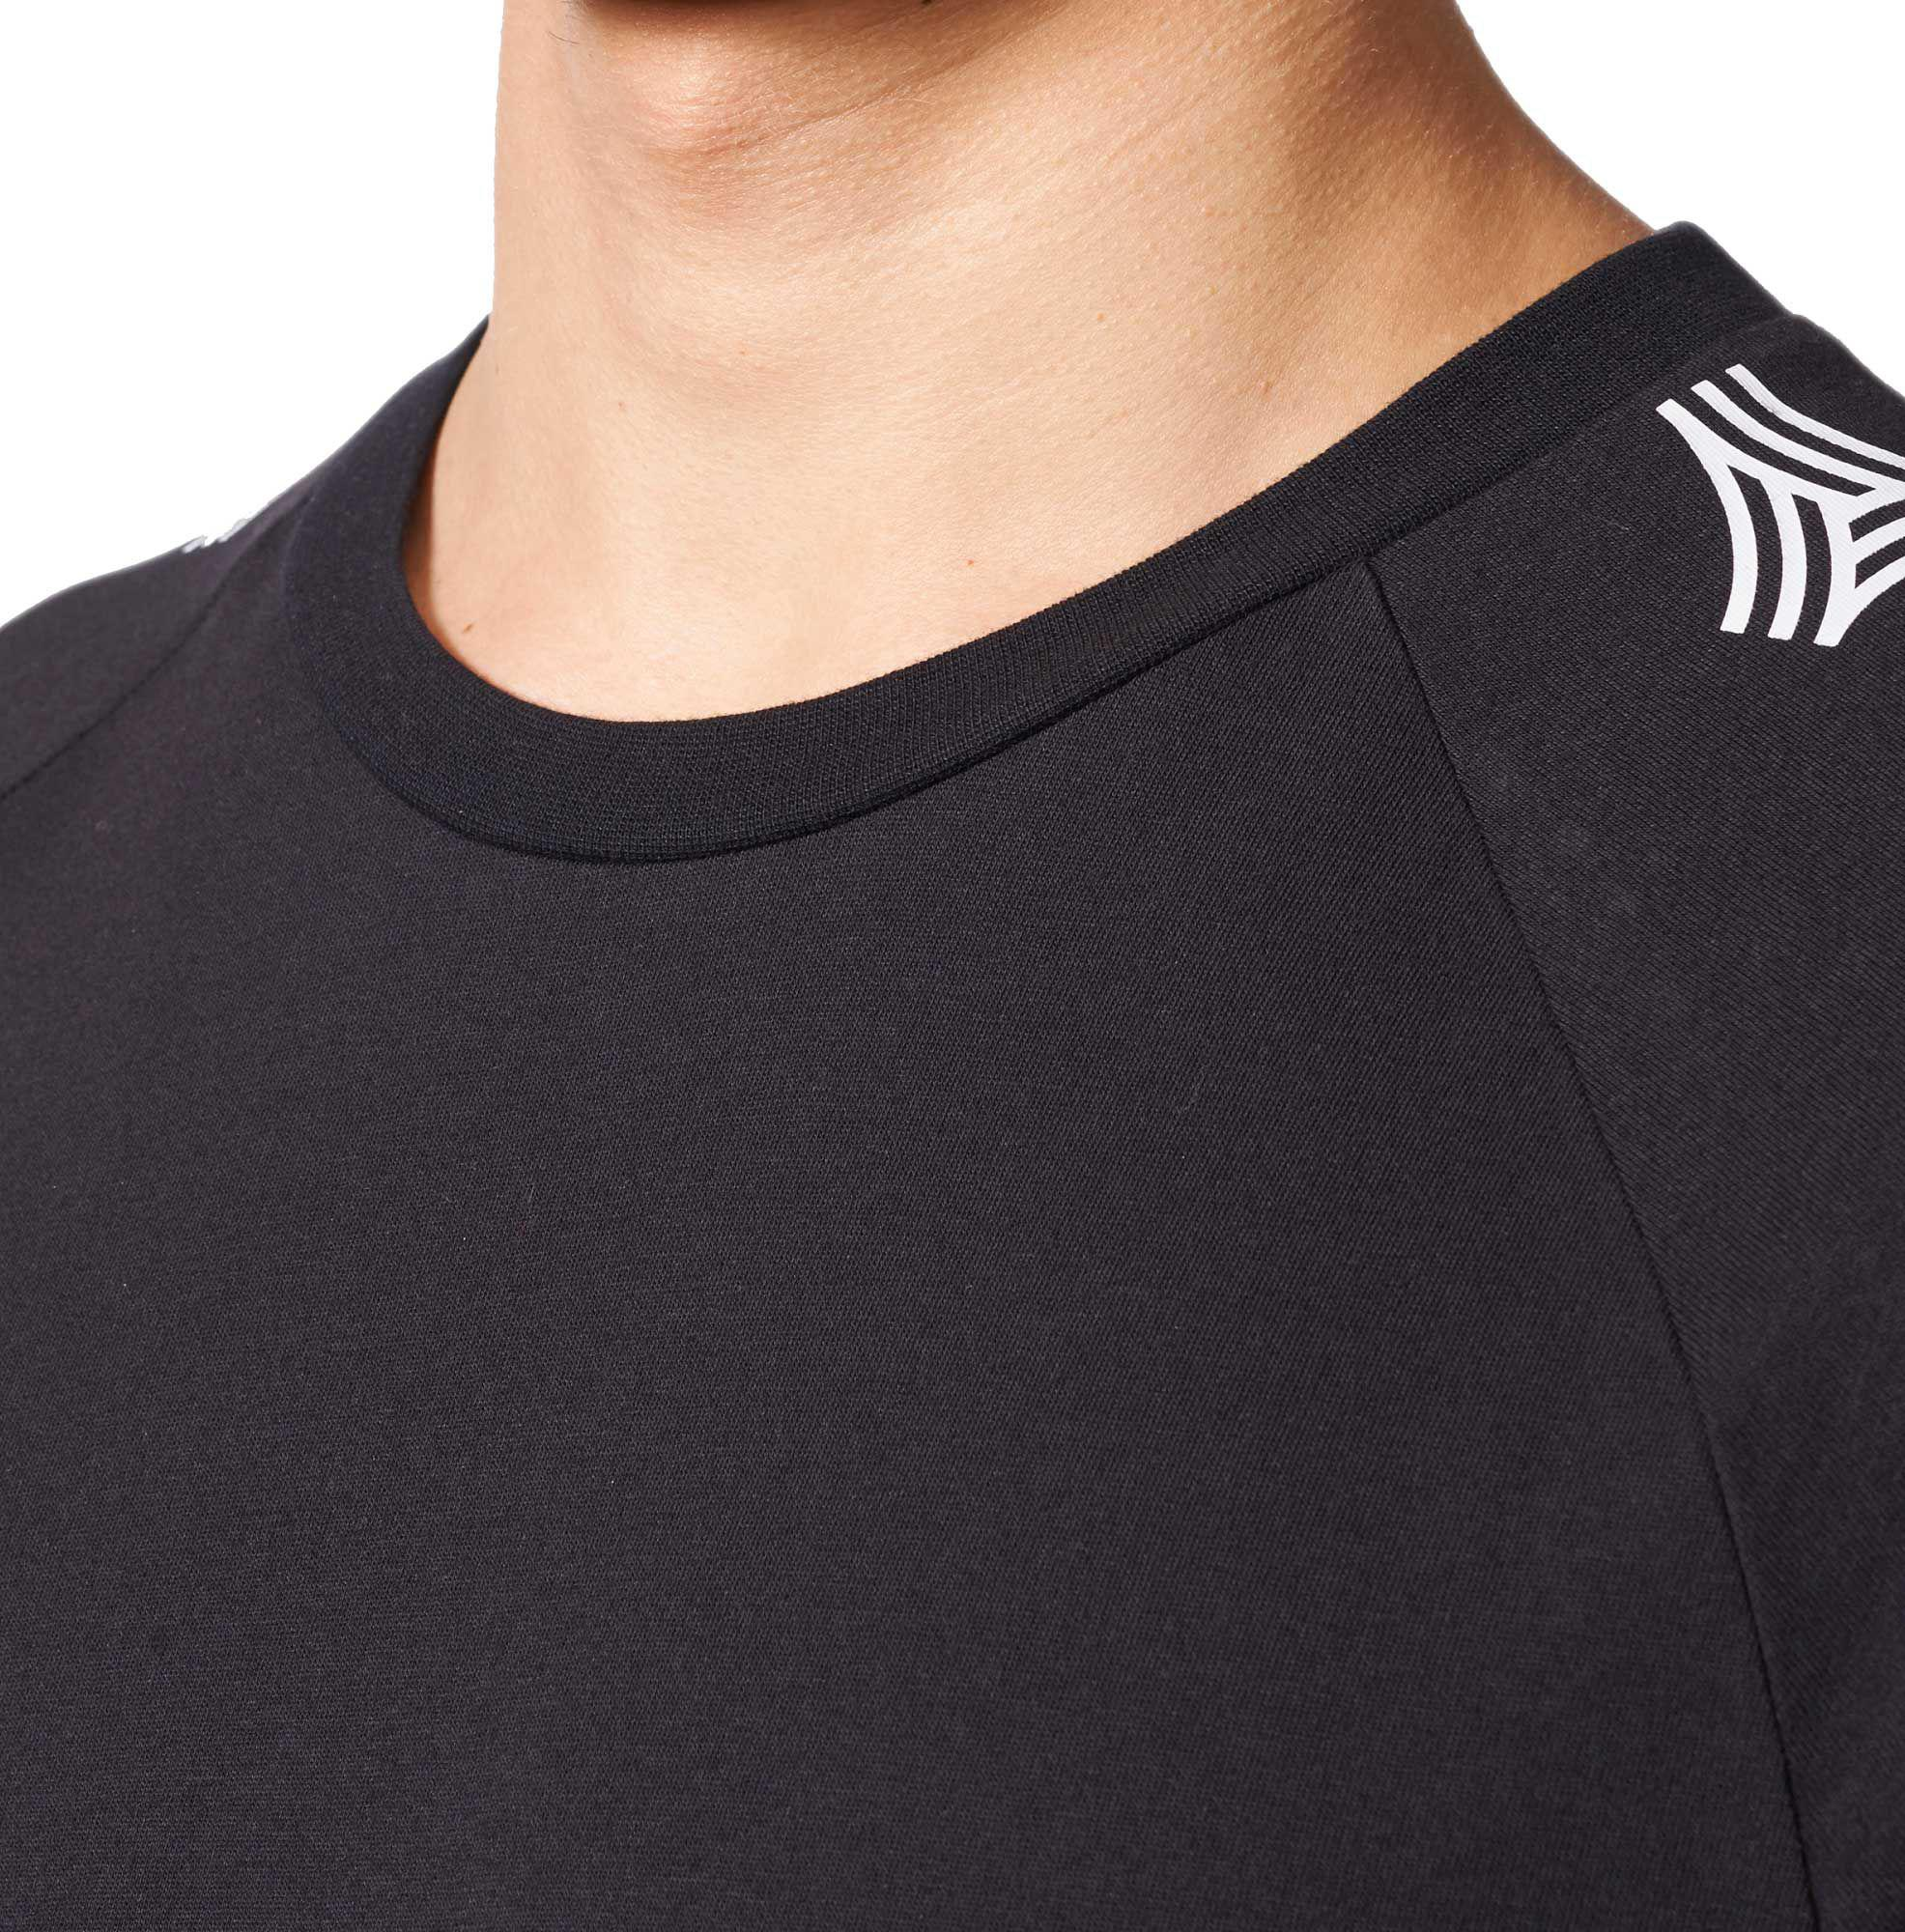 bc262397 adidas Tango Cage Long Sleeve T-shirt in Black for Men - Lyst